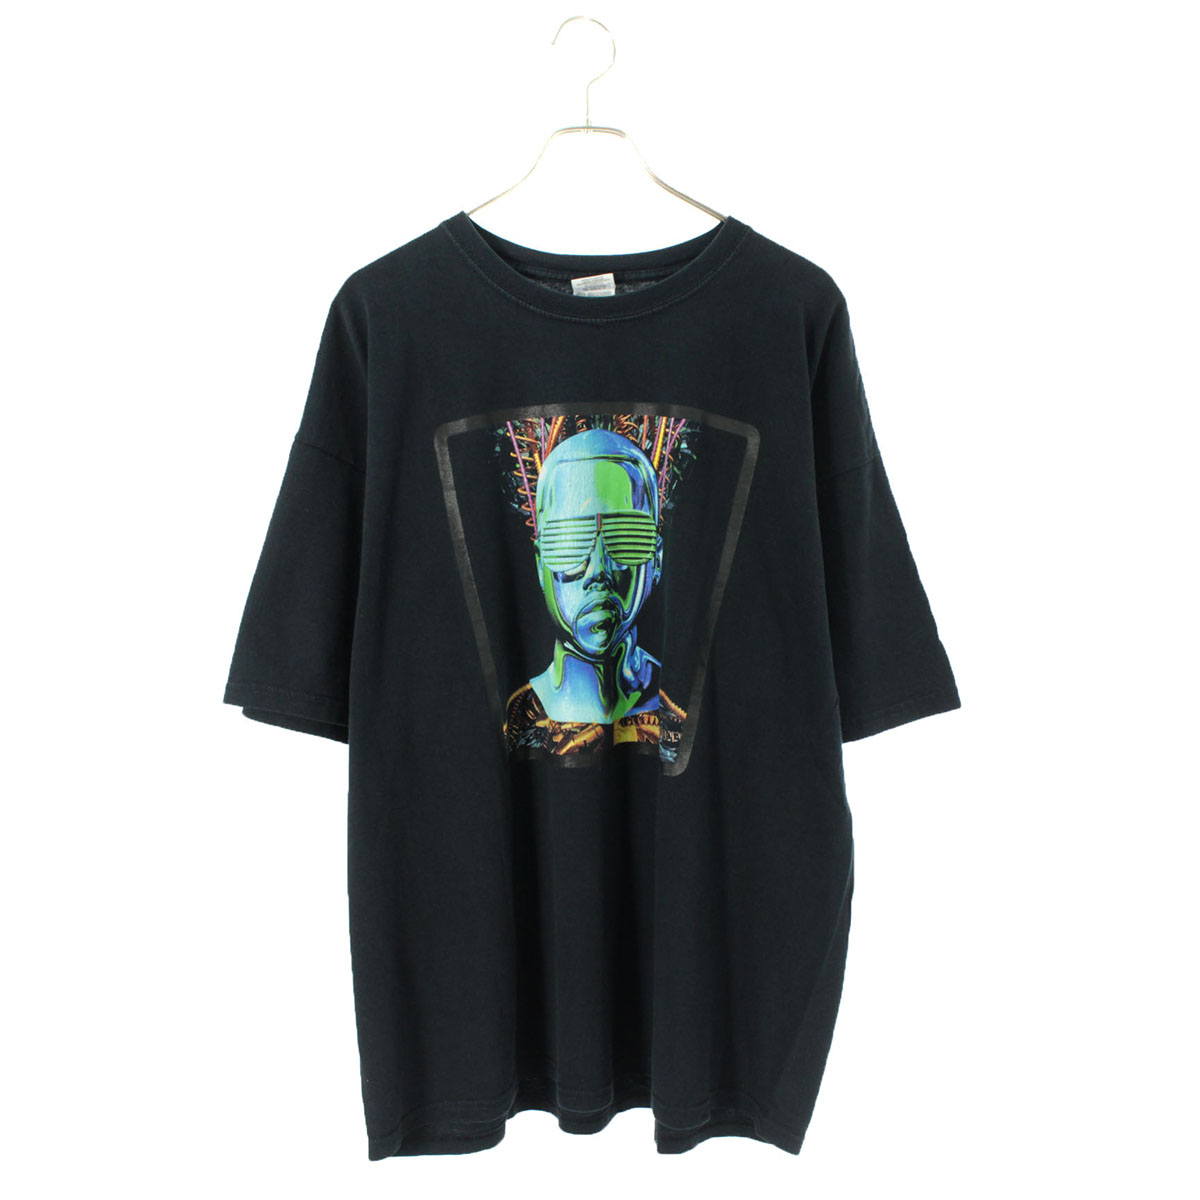 KANYE WEST GLOW IN THE DARK TOUR TEE